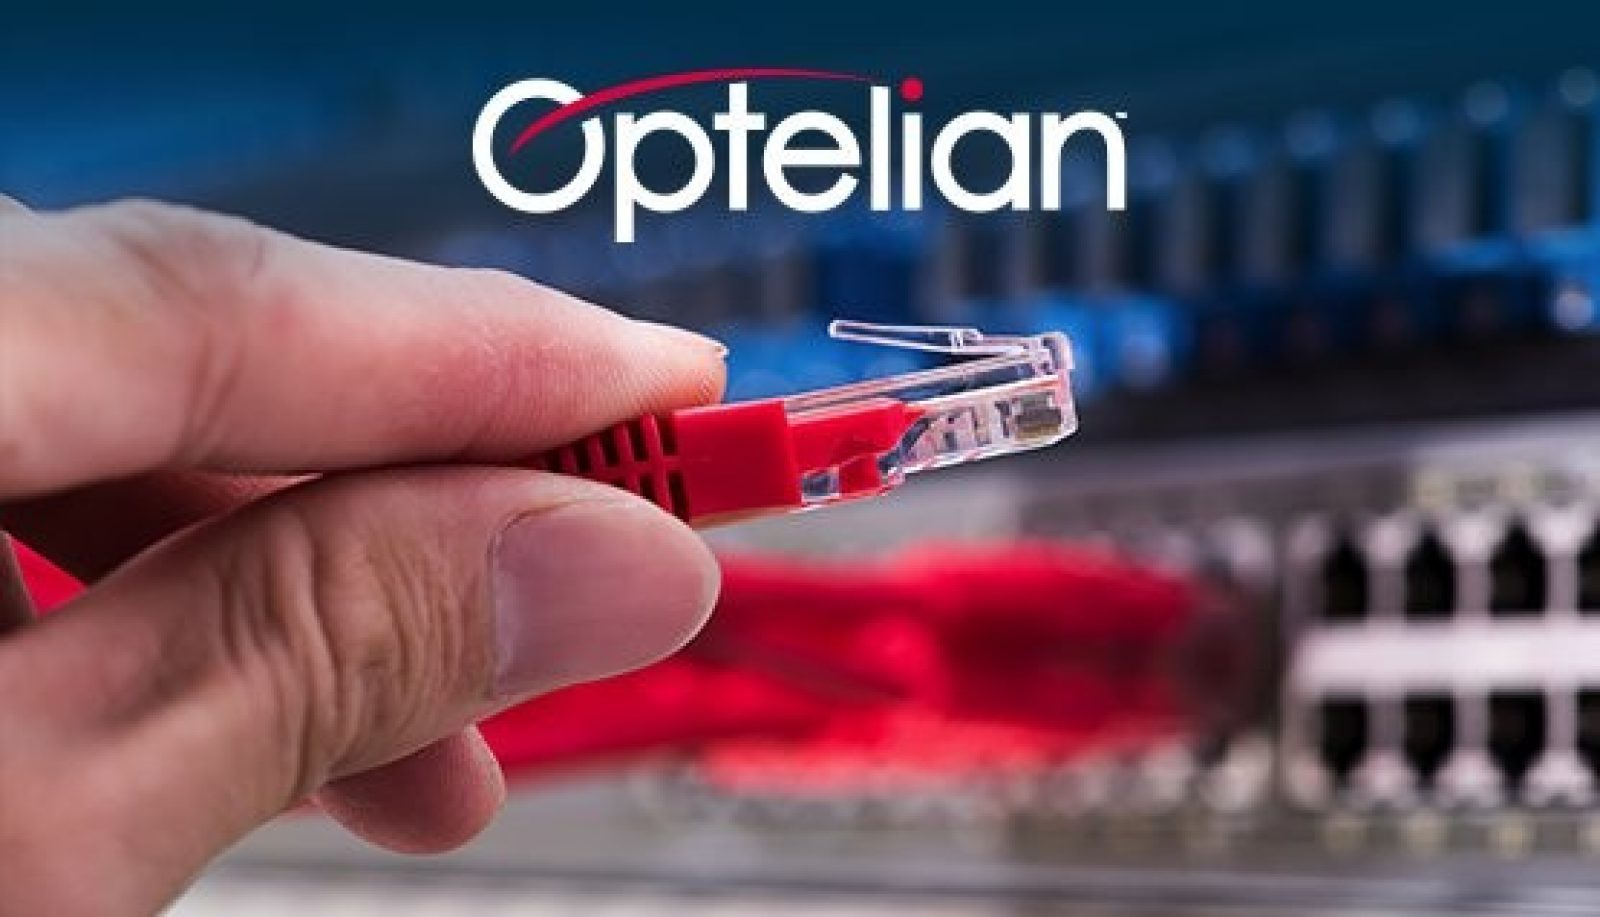 Jabil and Optelian